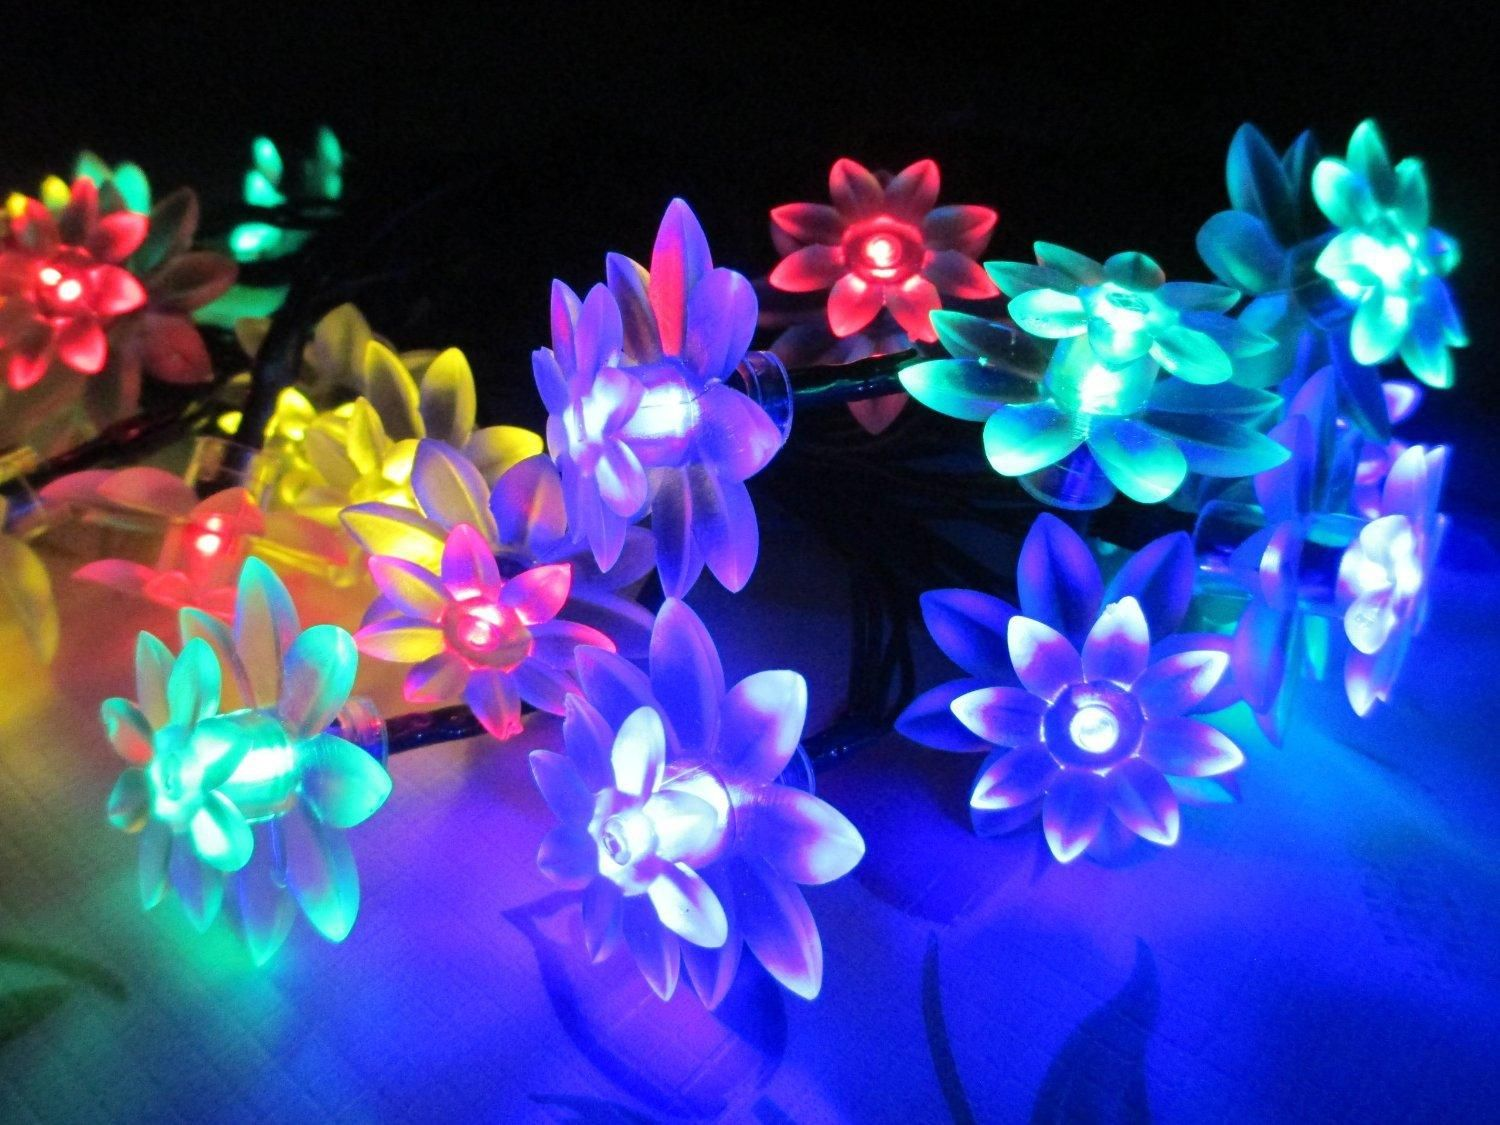 Decoration solar lights solar flower string lights fairy 20 led decoration solar lights solar flower string lights fairy 20 led blossom outdoor light for garden workwithnaturefo